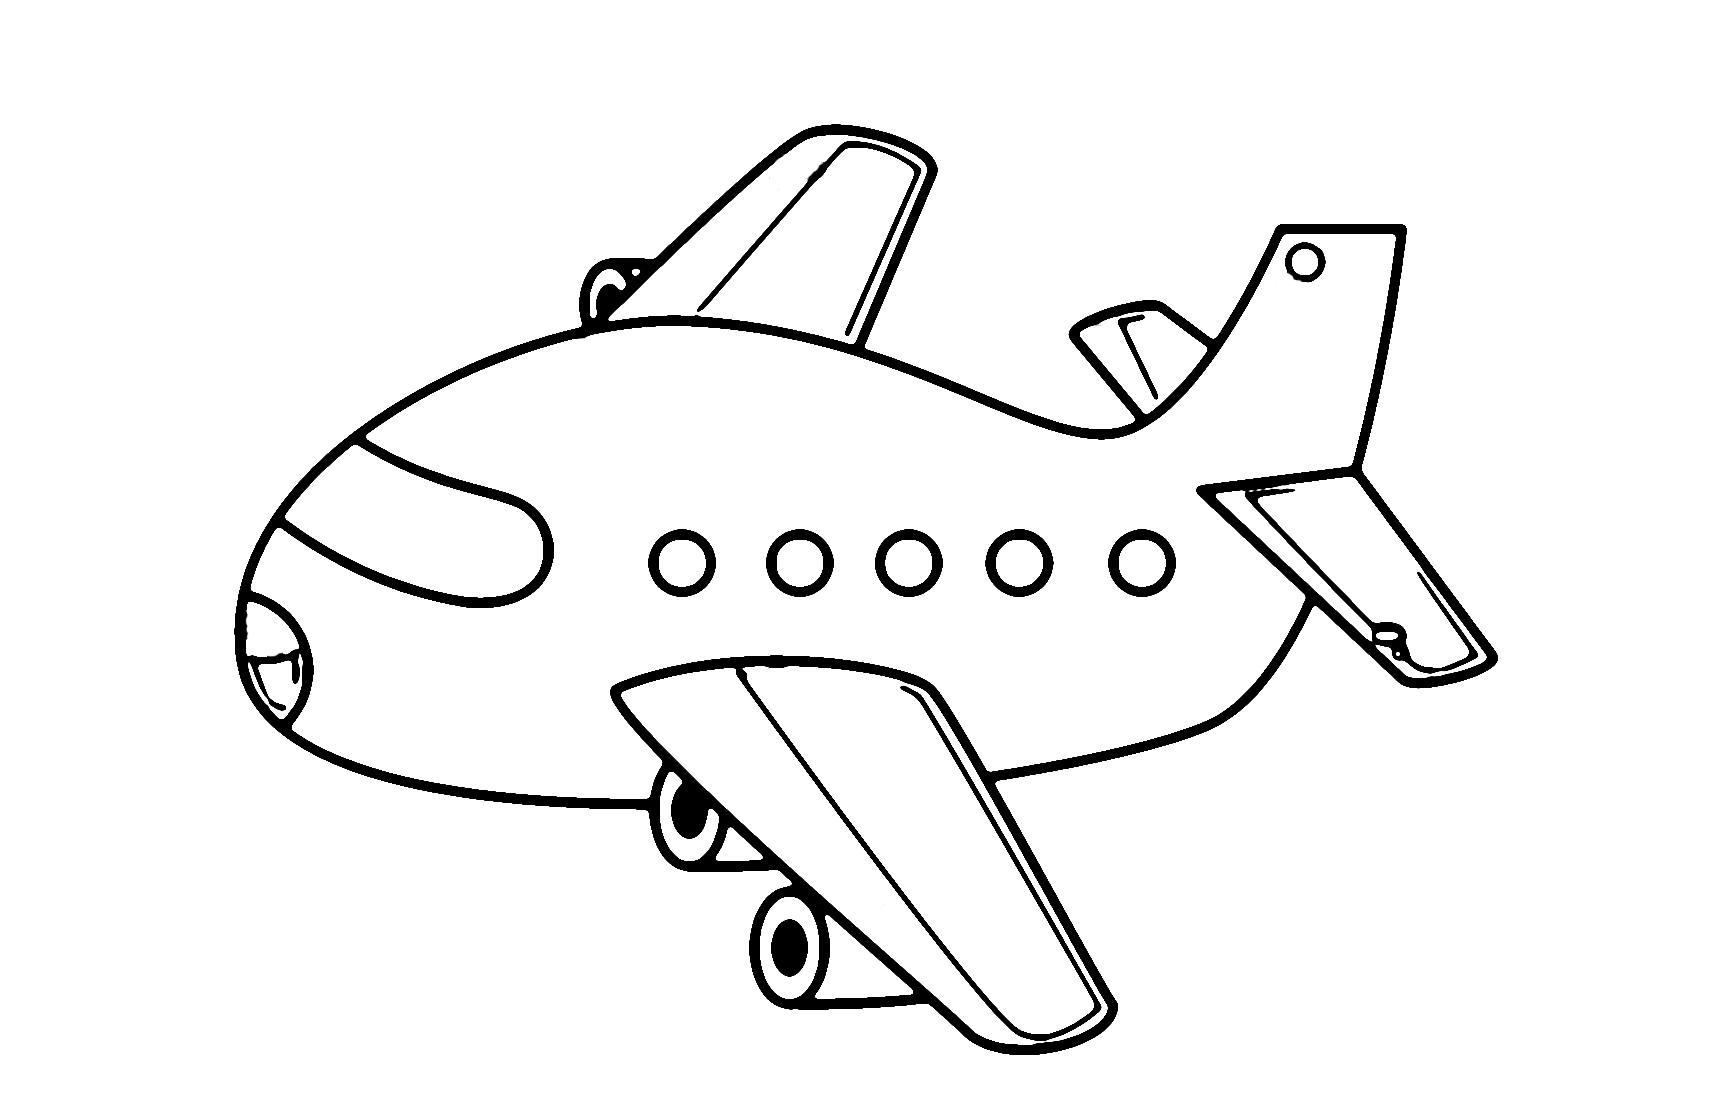 printable airplane coloring pages airplane coloring pages free printable coloring pages at pages printable airplane coloring